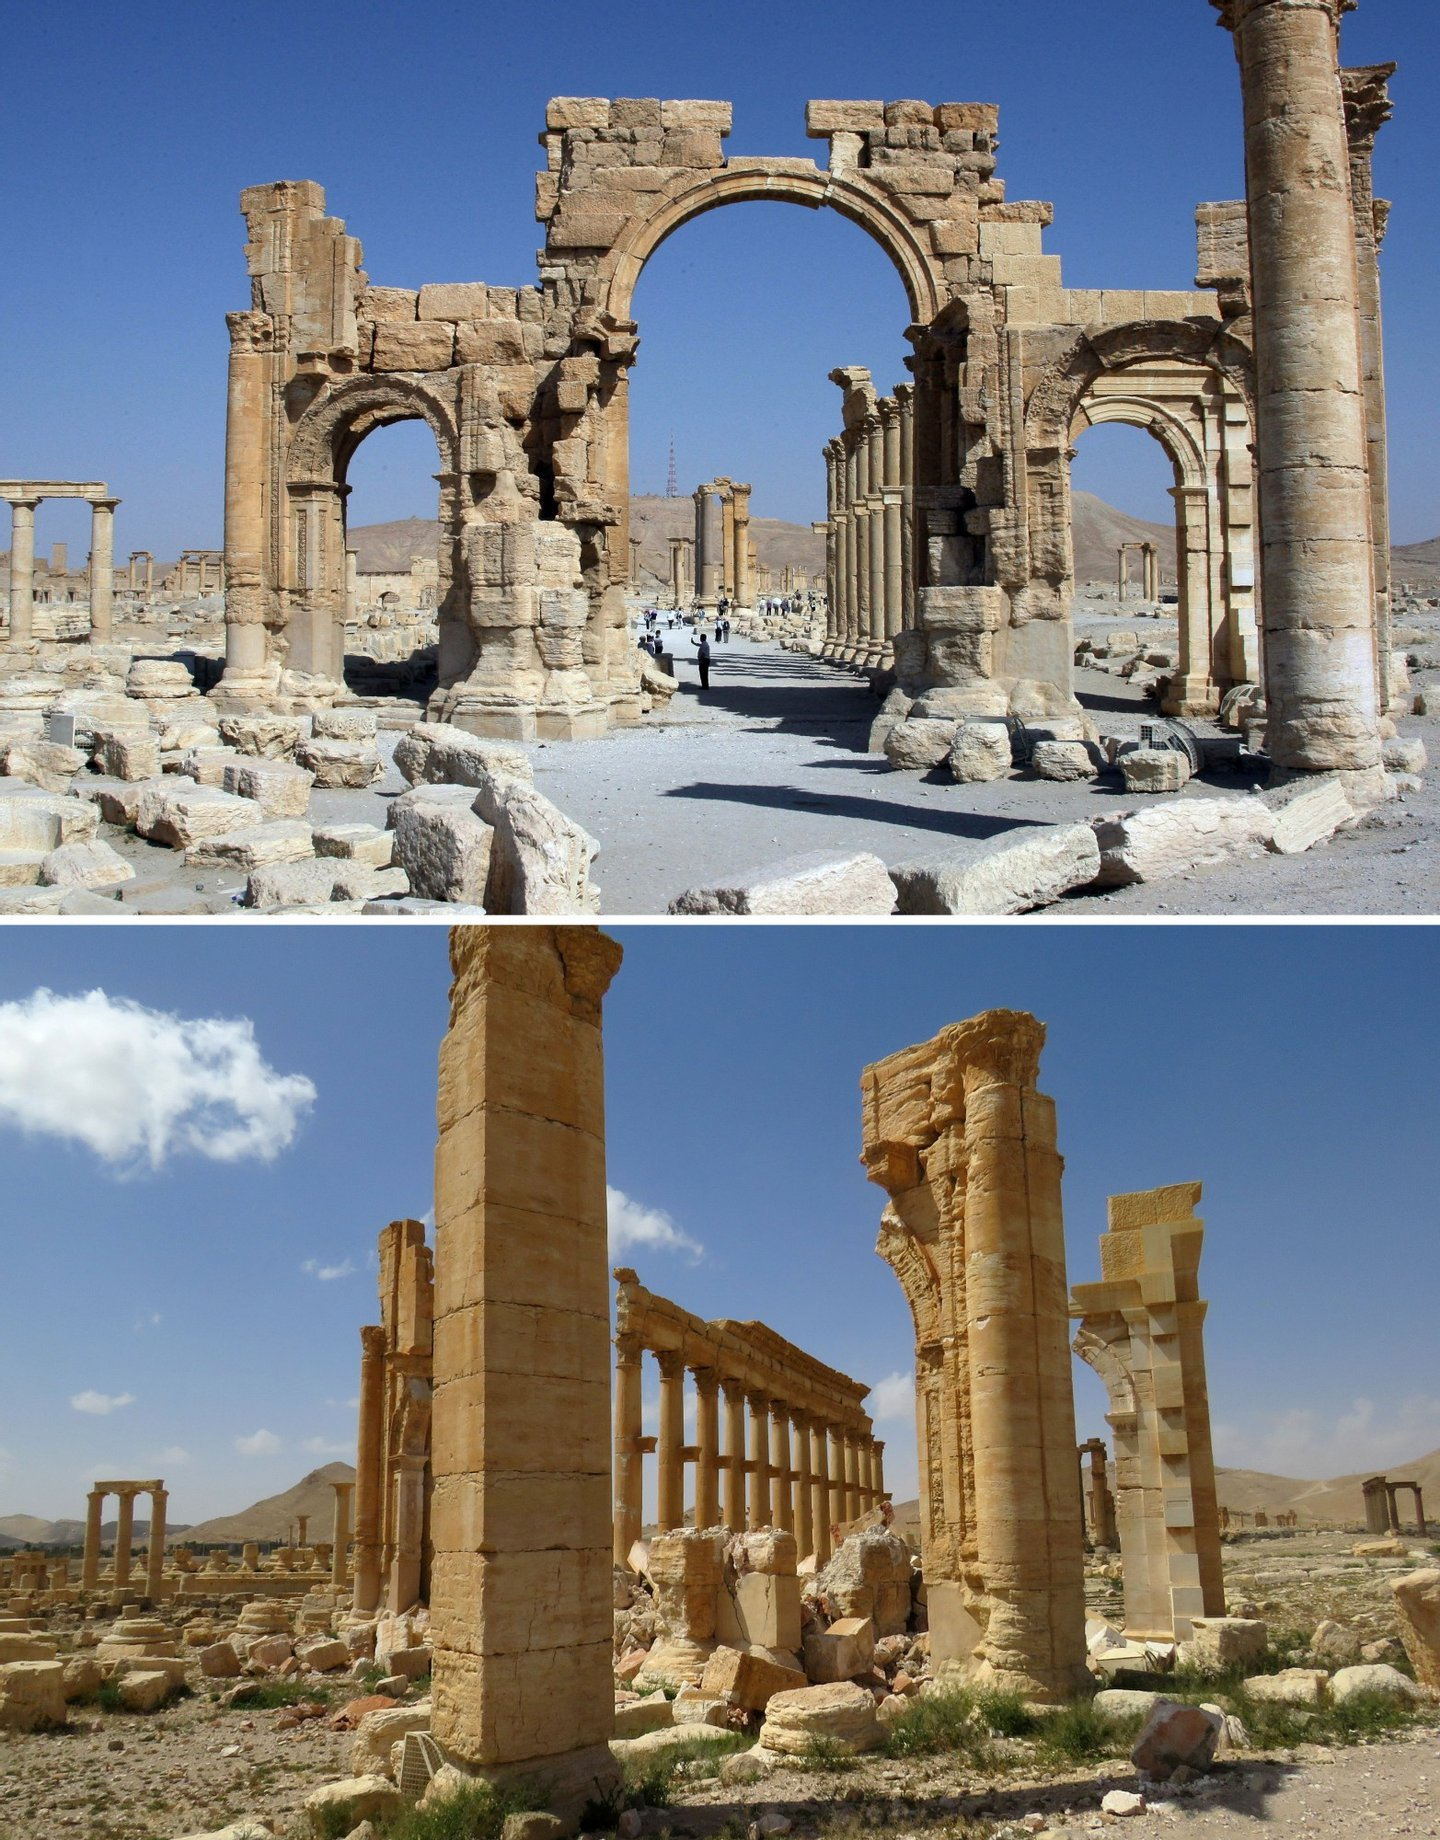 A combination of images shows a general view (top) taken on June 19, 2010 of the Arc de Troimphe (Triumph's Arc) prior to being destroyed by Islamic State (IS) group jihadists in October 2015 and the remains of the iconic structure after government troops recaptured the ancient city of Palmyra from IS fighters on March 27, 2016. Archaeologists were rushing to the ancient city of Palmyra on March 27, 2016 to assess the damage wreaked by the Islamic State group, after it was ousted by the Syrian army in a bloody battle. / AFP / LOUAI BESHARA AND STRINGER (Photo credit should read LOUAI BESHARA,STRINGER/AFP/Getty Images)